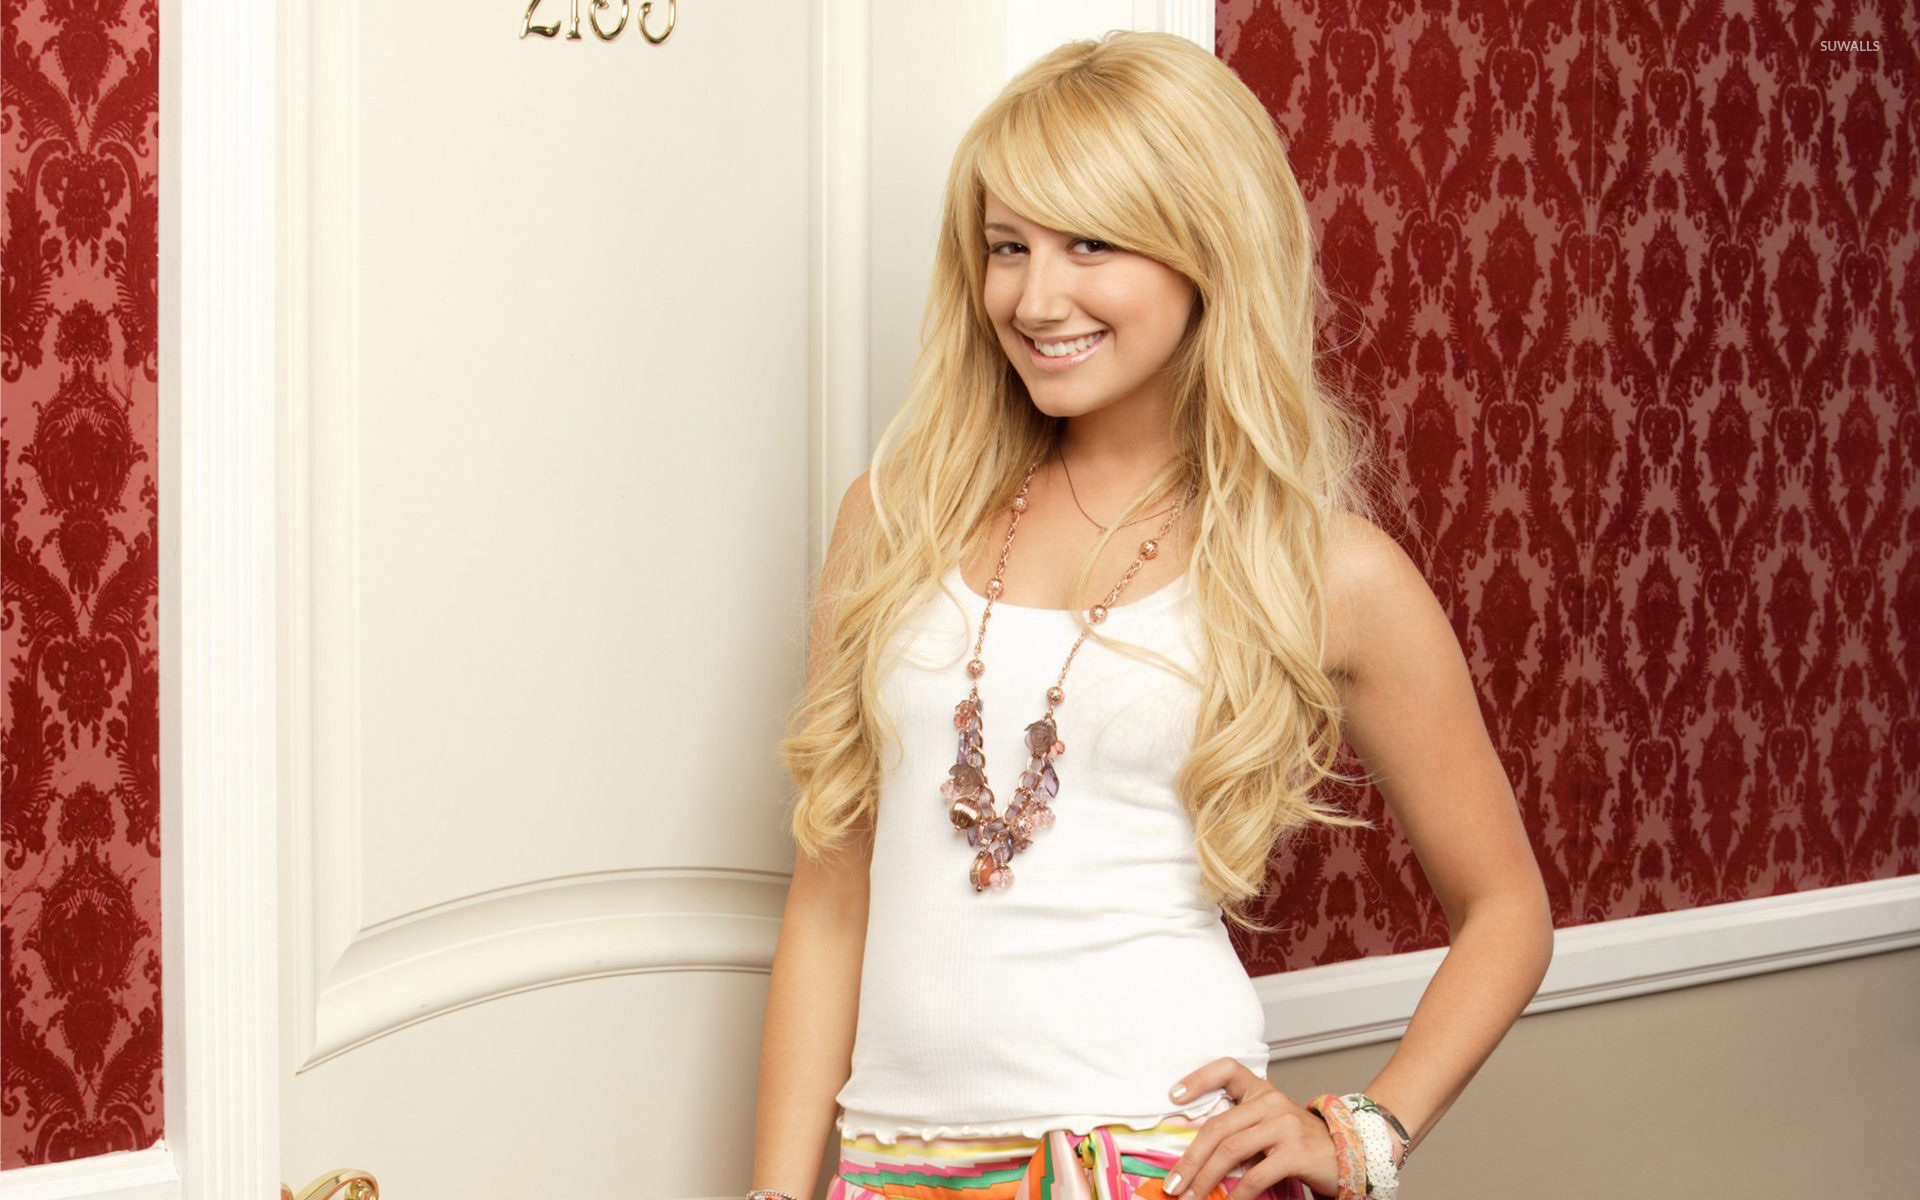 ashley tisdale 4 wallpapers - photo #1